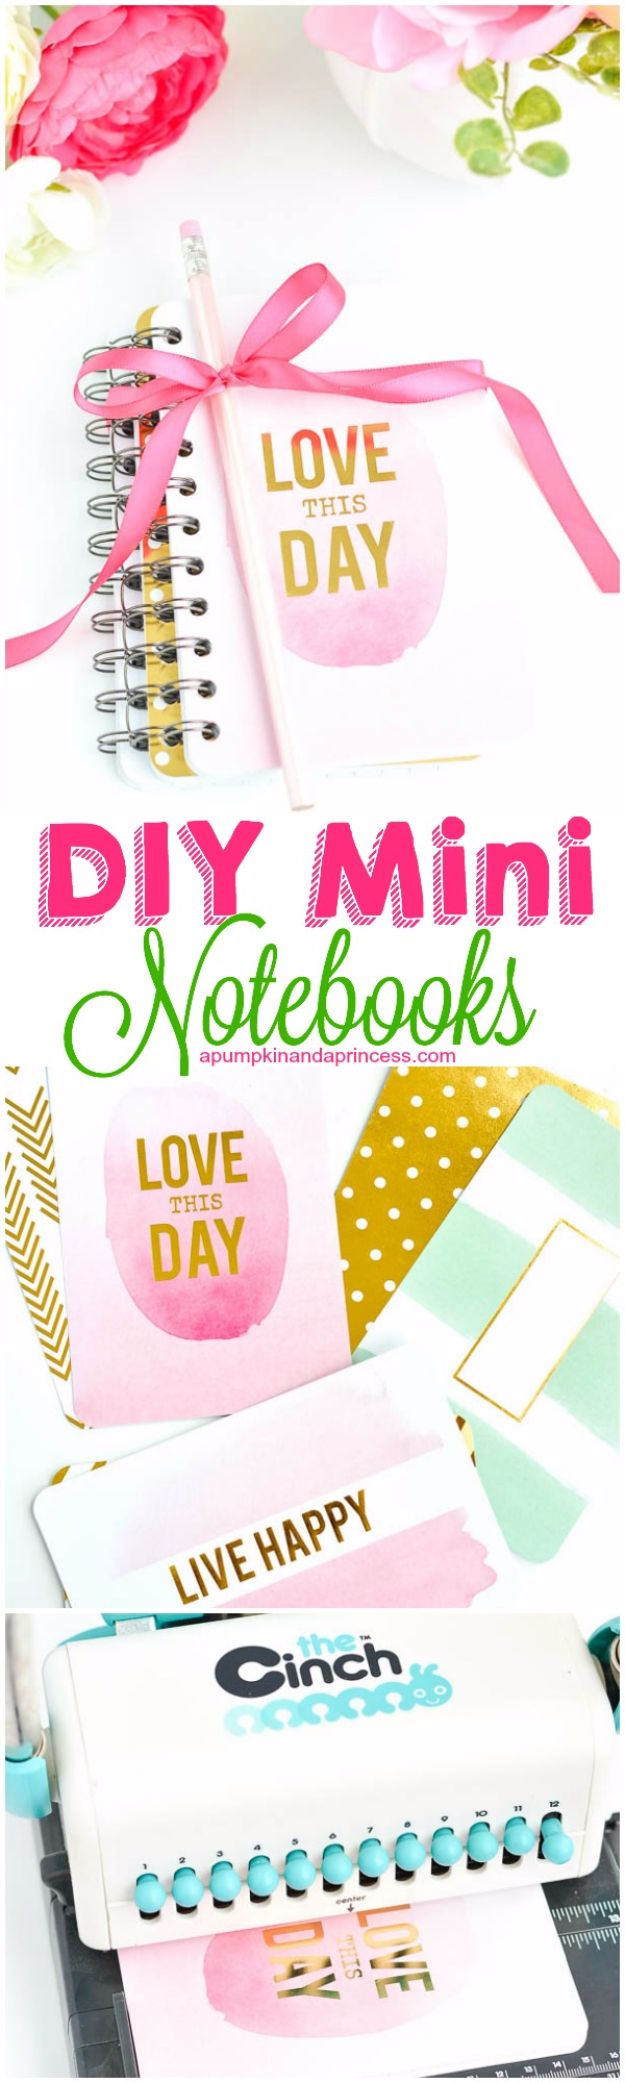 Cheap DIY Gifts and Inexpensive Homemade Christmas Gift Ideas for People on A Budget - DIY Mini Notebooks - To Make These Cool Presents Instead of Buying for the Holidays - Easy and Low Cost Gifts fTo Make For Friends and Neighbors - Quick Dollar Store Crafts and Projects for Xmas Gift Giving Parties - Step by Step Tutorials and Instructions http://diyjoy.com/cheap-gifts-to-make-for-friends